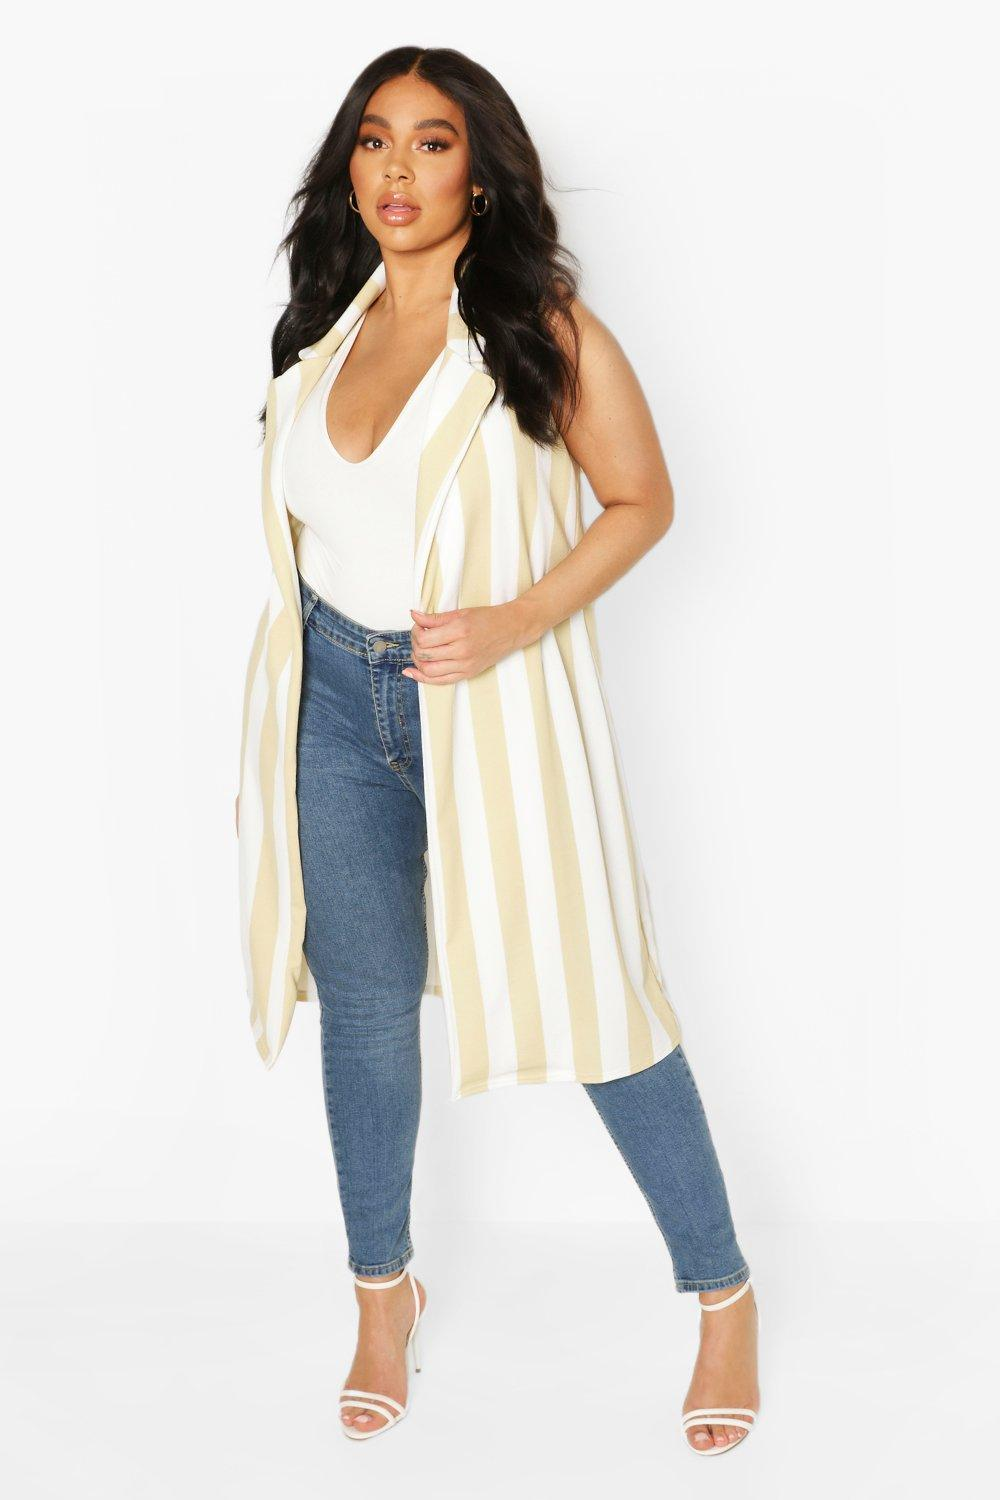 boohoo Womens Plus Stripe Sleevless Duster - Beige - 20, Beige